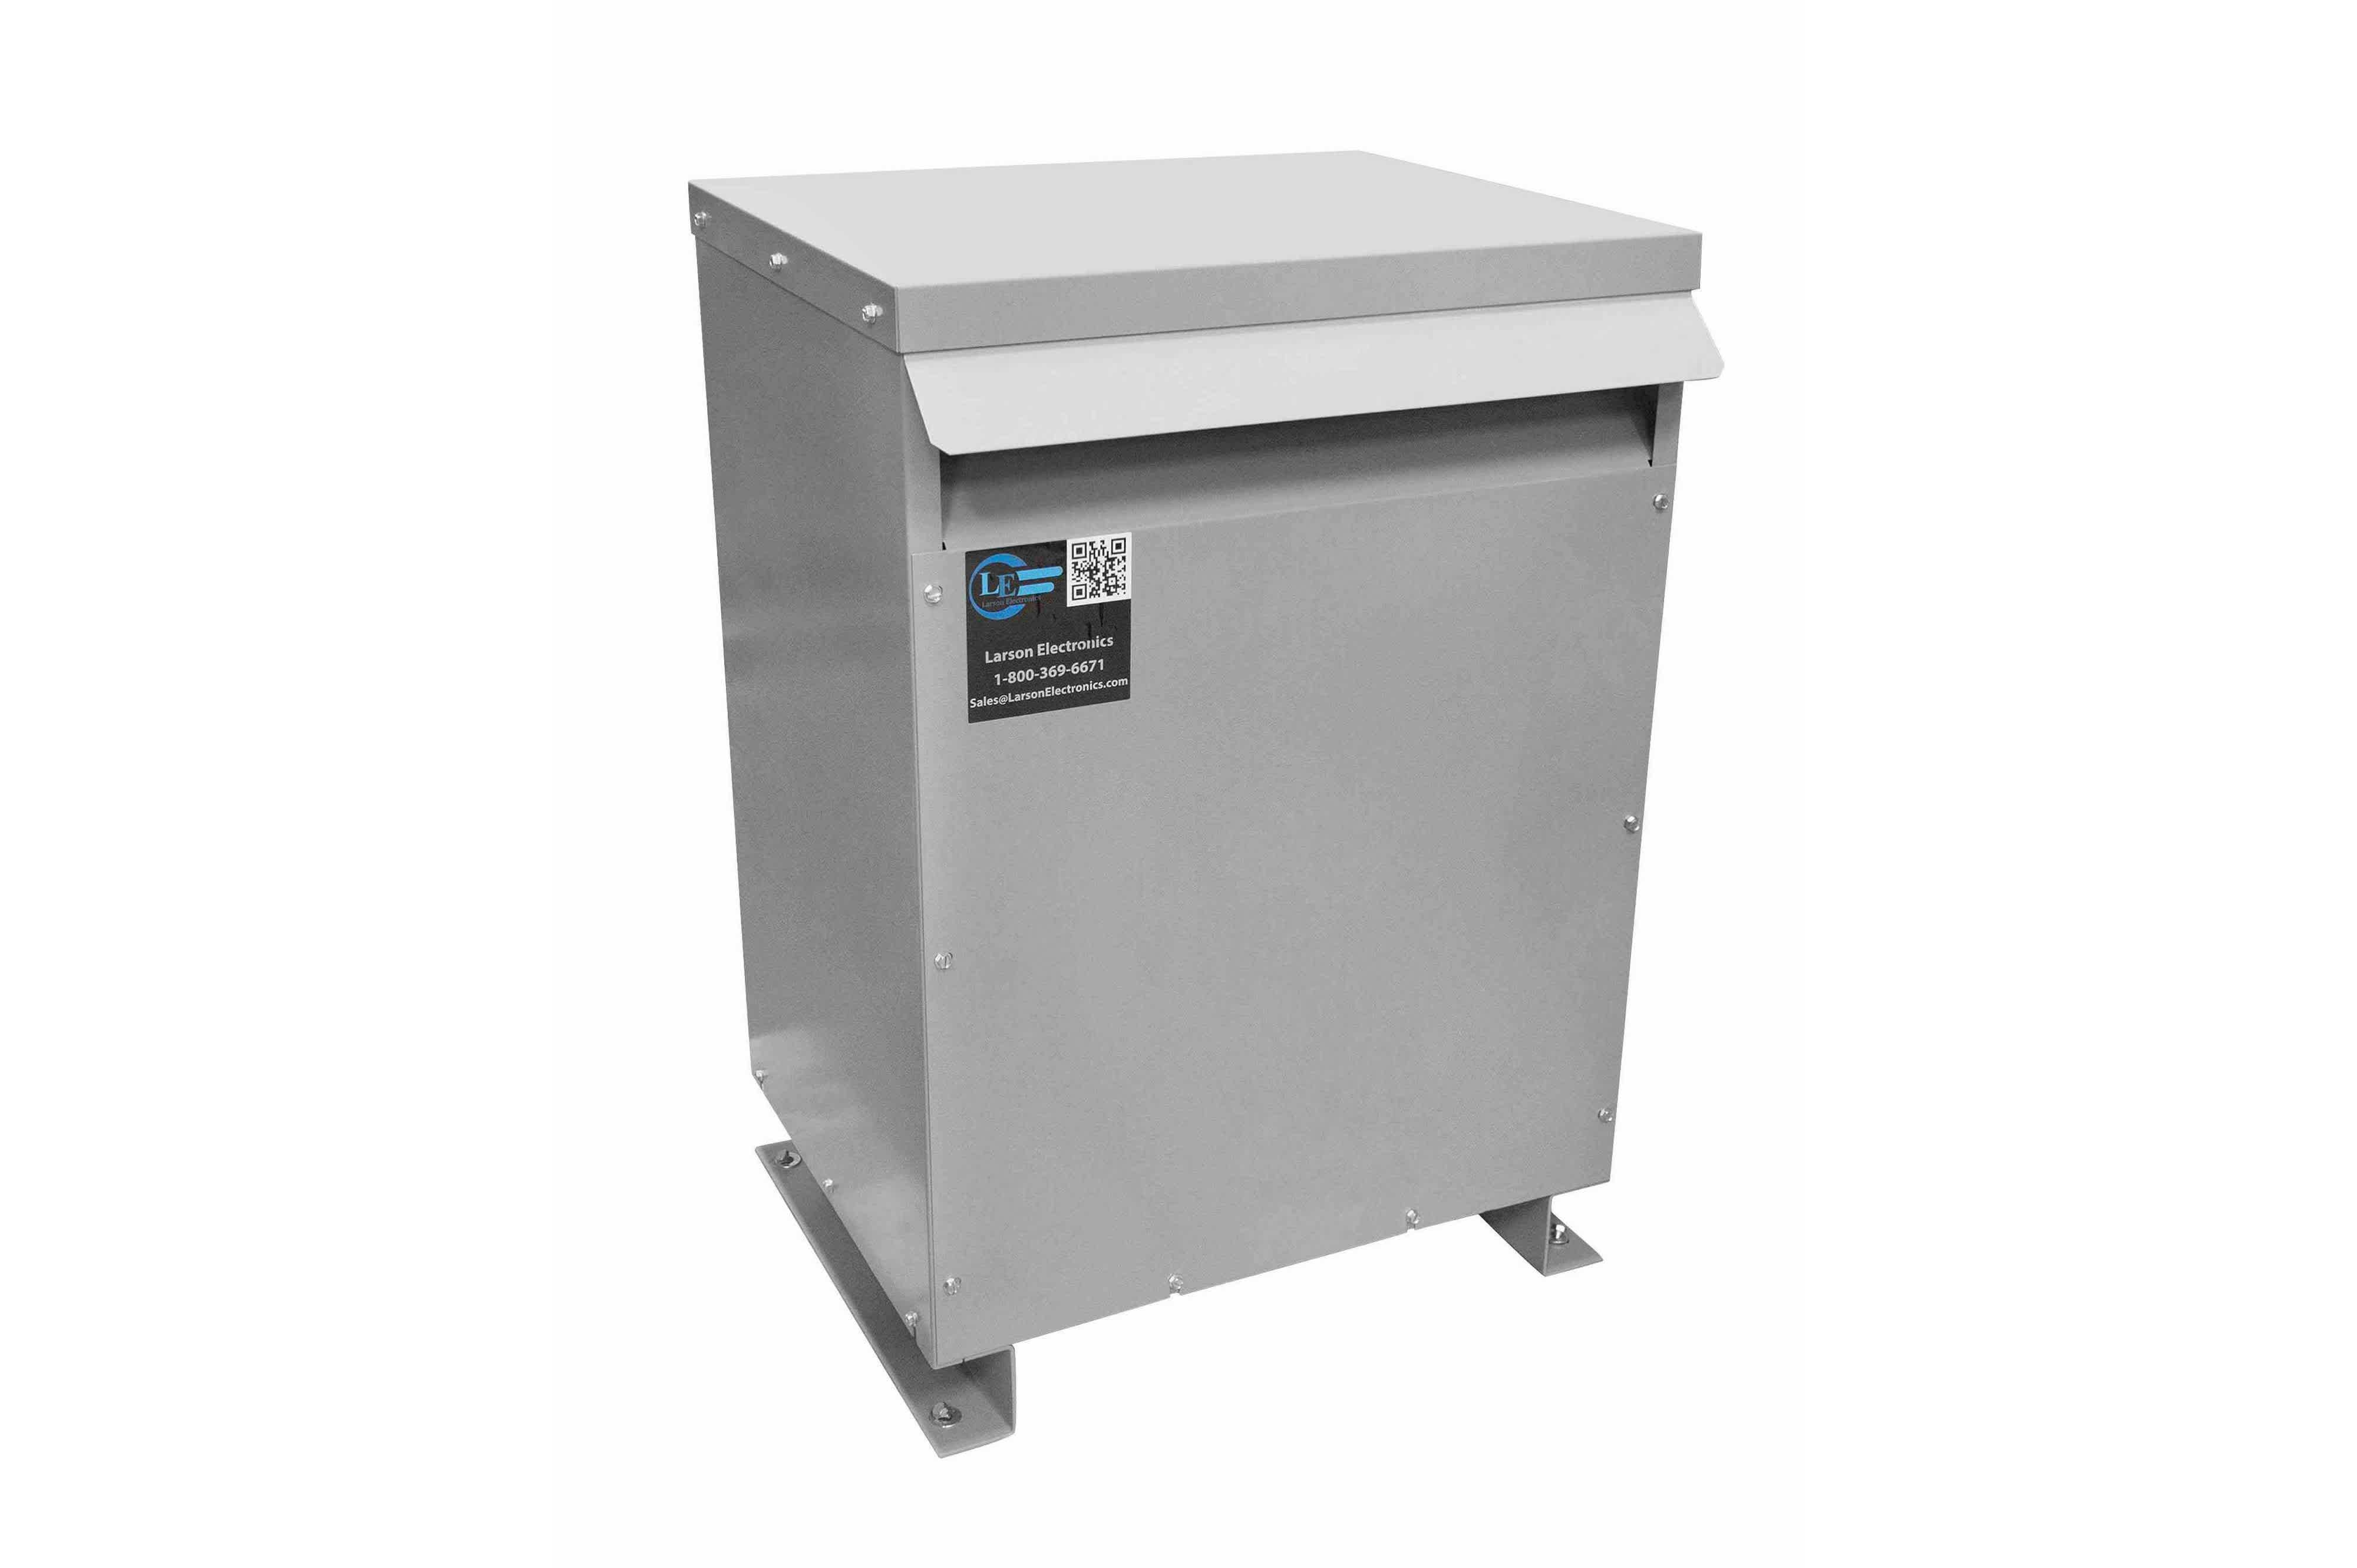 10 kVA 3PH Isolation Transformer, 240V Wye Primary, 400Y/231 Wye-N Secondary, N3R, Ventilated, 60 Hz